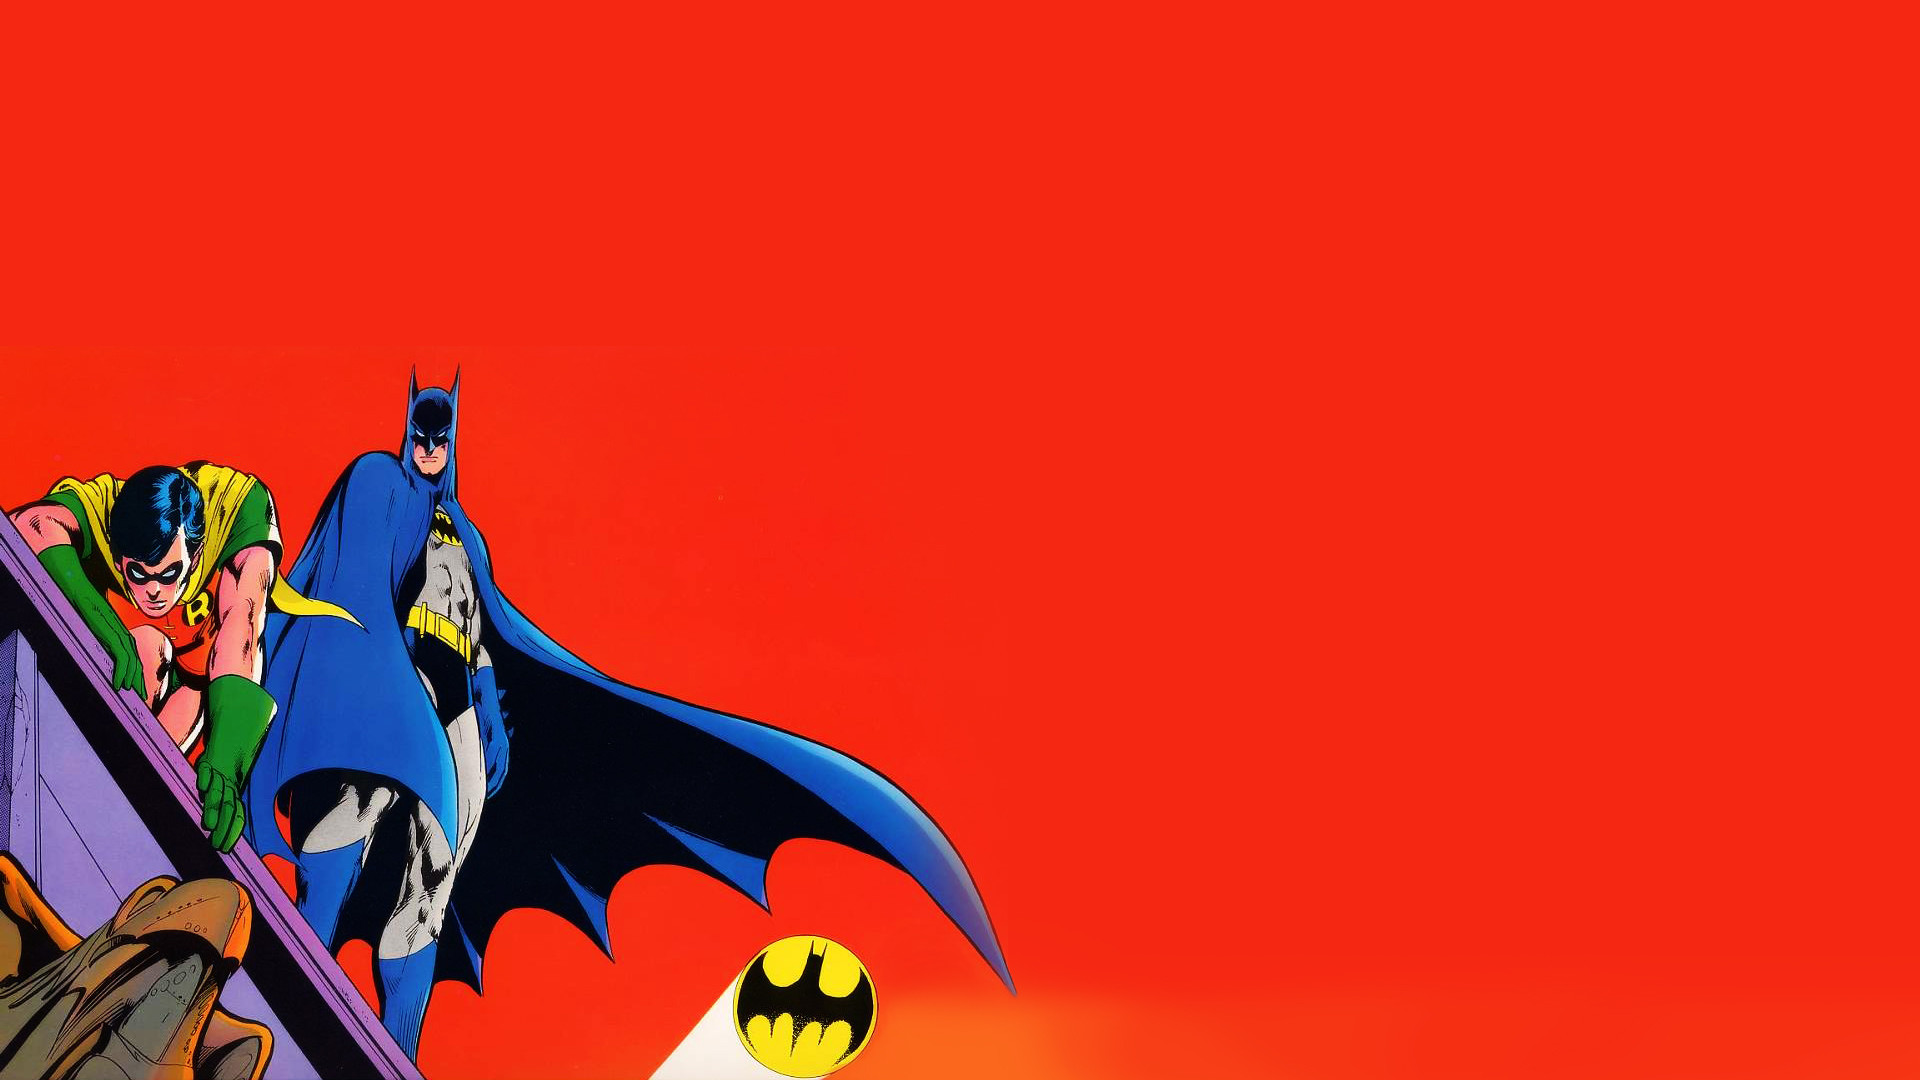 1920x1080 3 The Adventures of Batman & Robin HD Wallpapers | Backgrounds - Wallpaper  Abyss